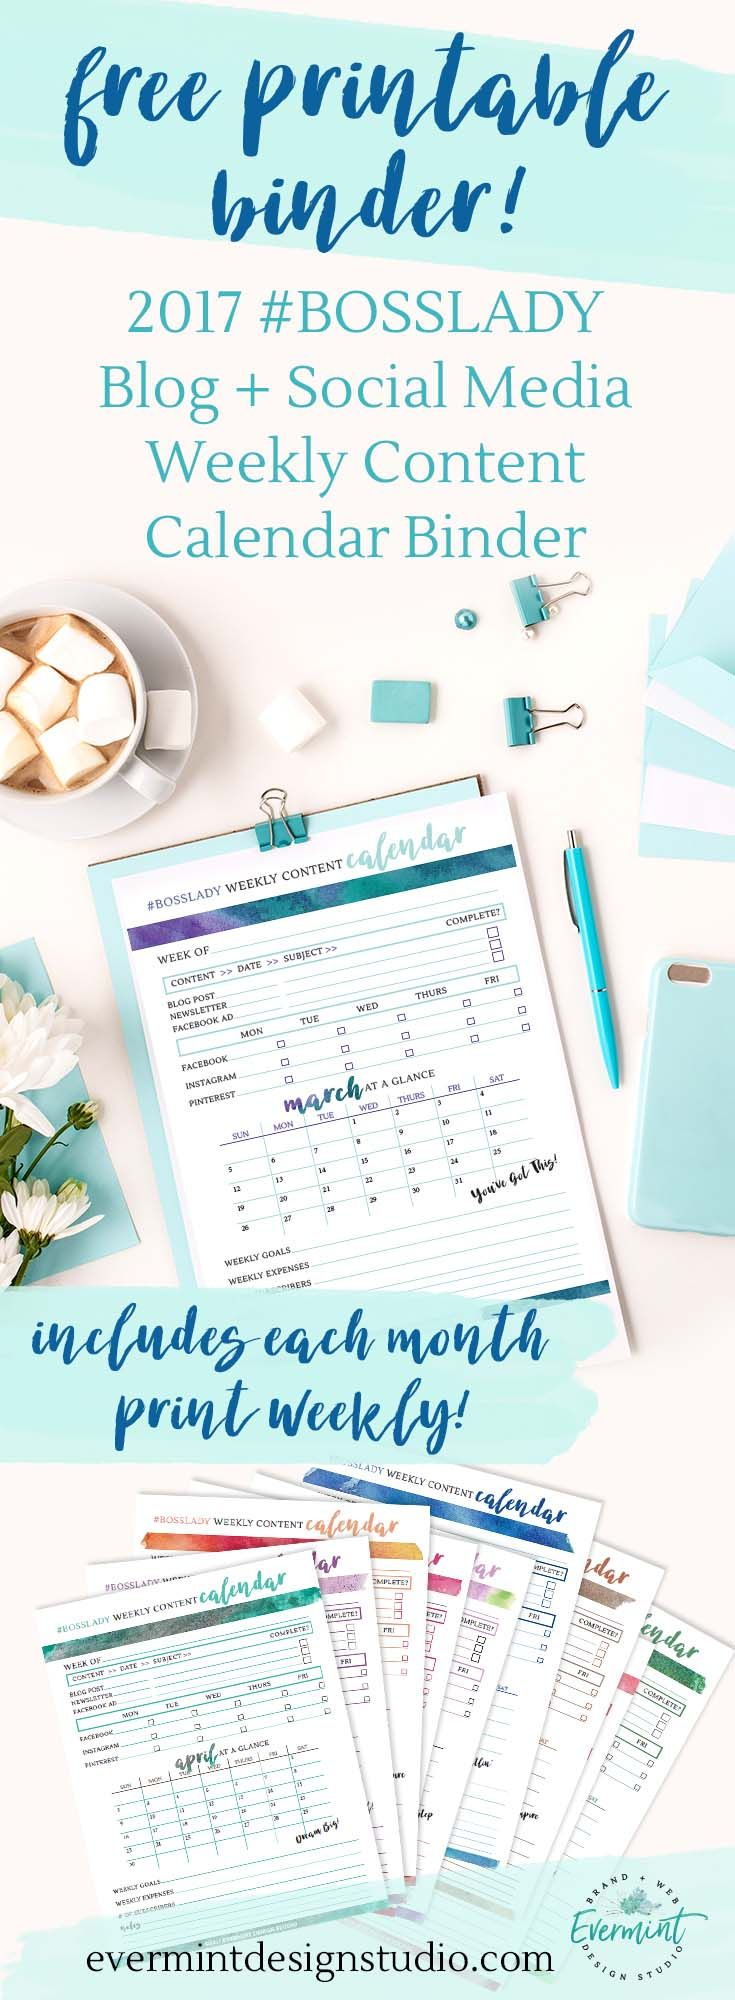 Get the FREE Printable Binder - 2017 Blog + Social Media Weekly Content Calendar // Looking to streamline your weekly content planning strategy? Download my 2017 Weekly Content Planner Binder and get organized with your weekly social media, blog and newsl